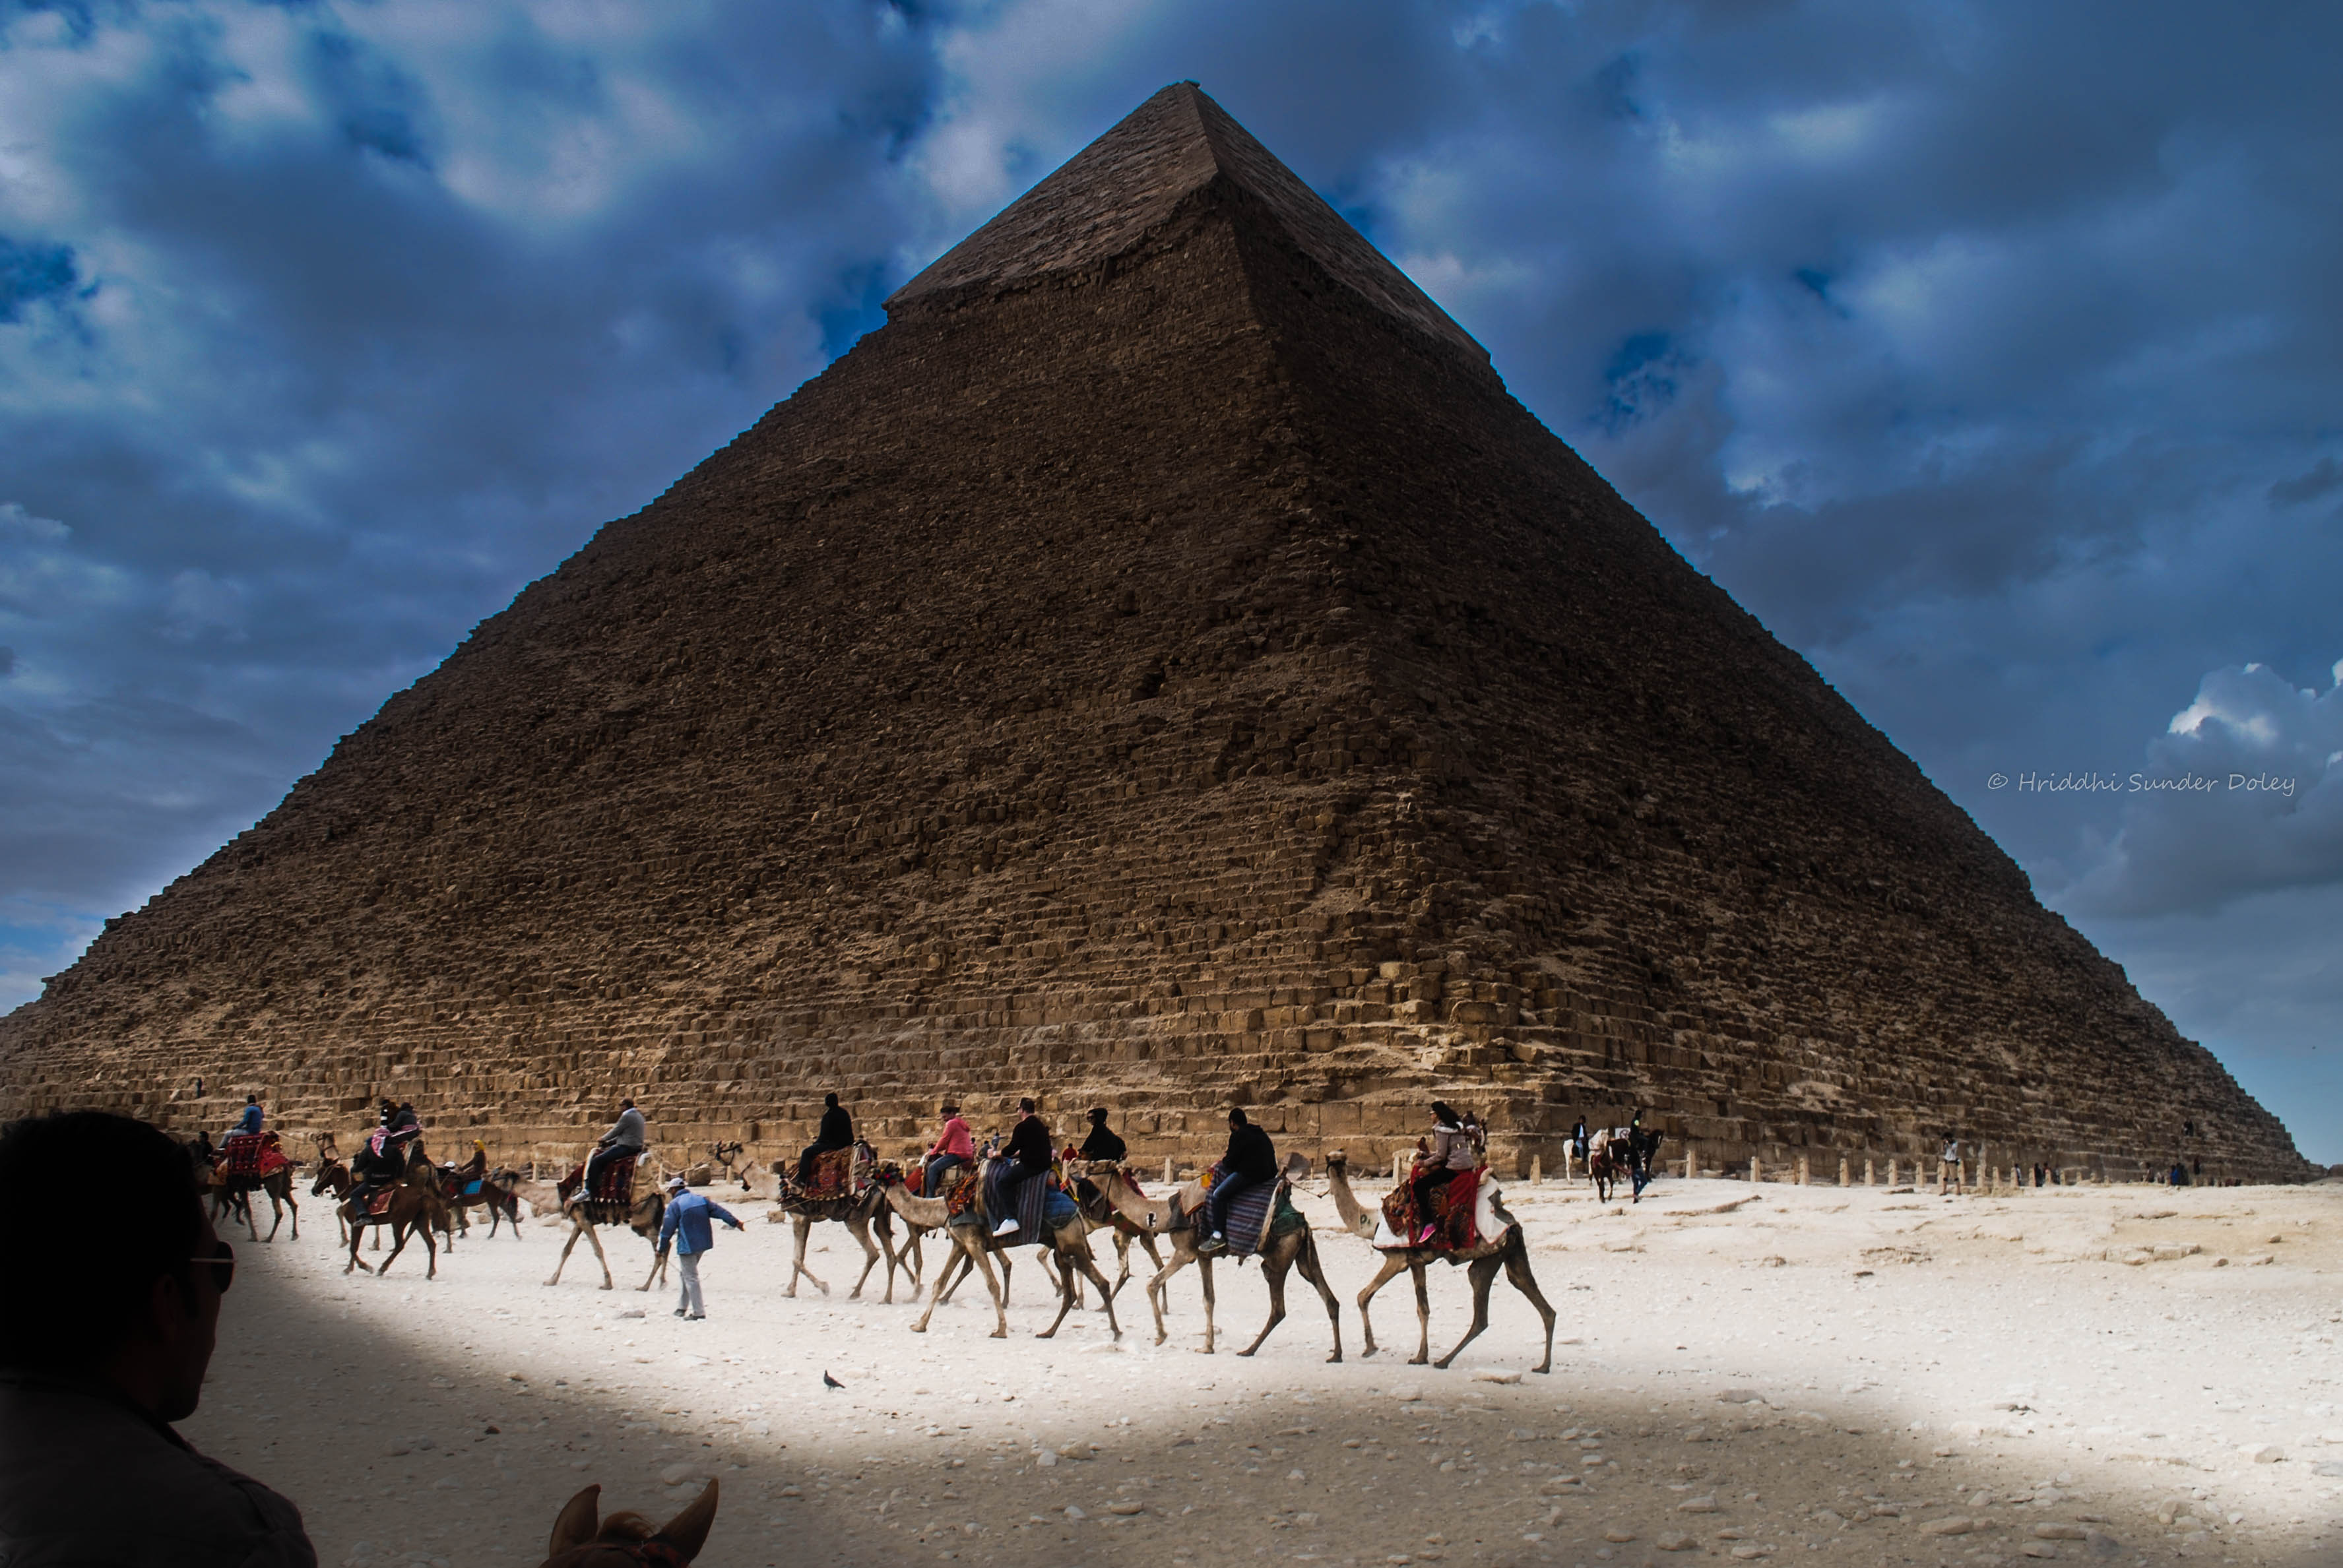 A trip to the pyramids of Egypt